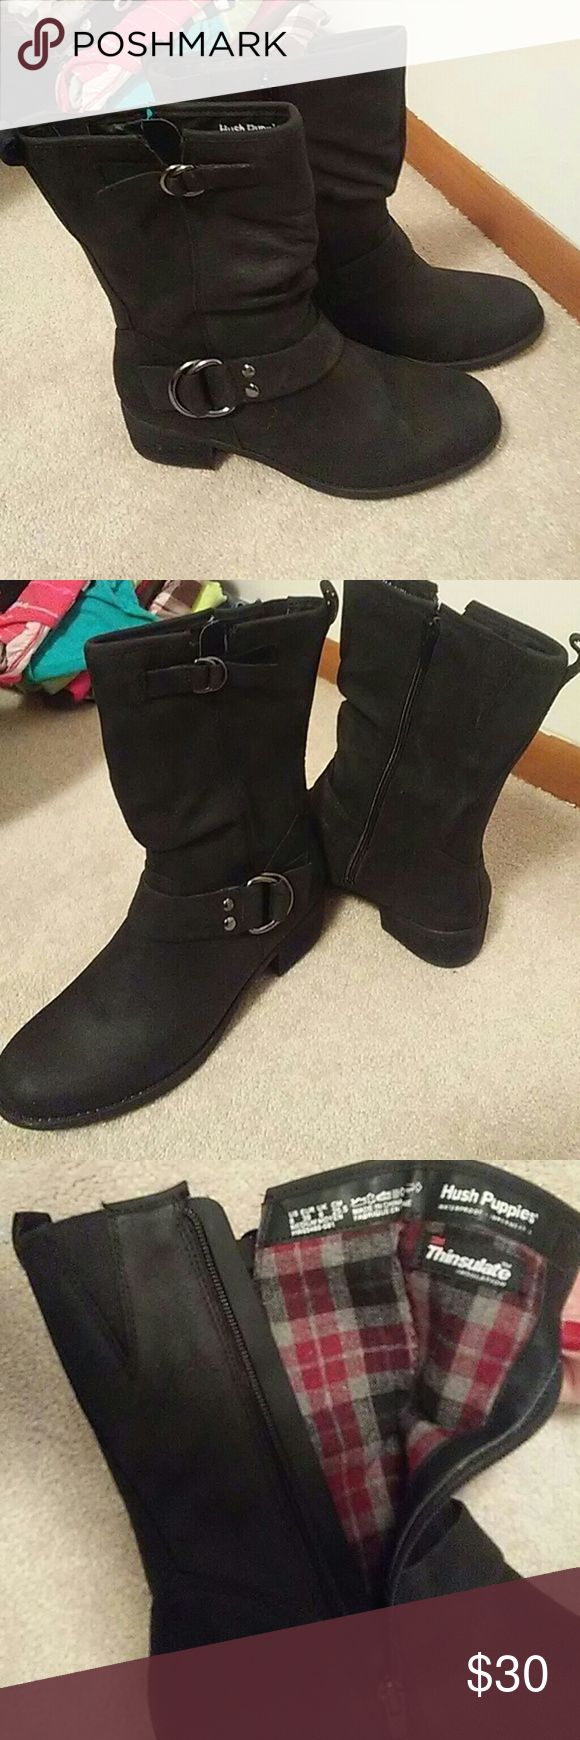 Hush Puppies thinsulate boots size 8 Got as Xmas present,  brand new and never worn, too small Hush Puppies Shoes Combat & Moto Boots